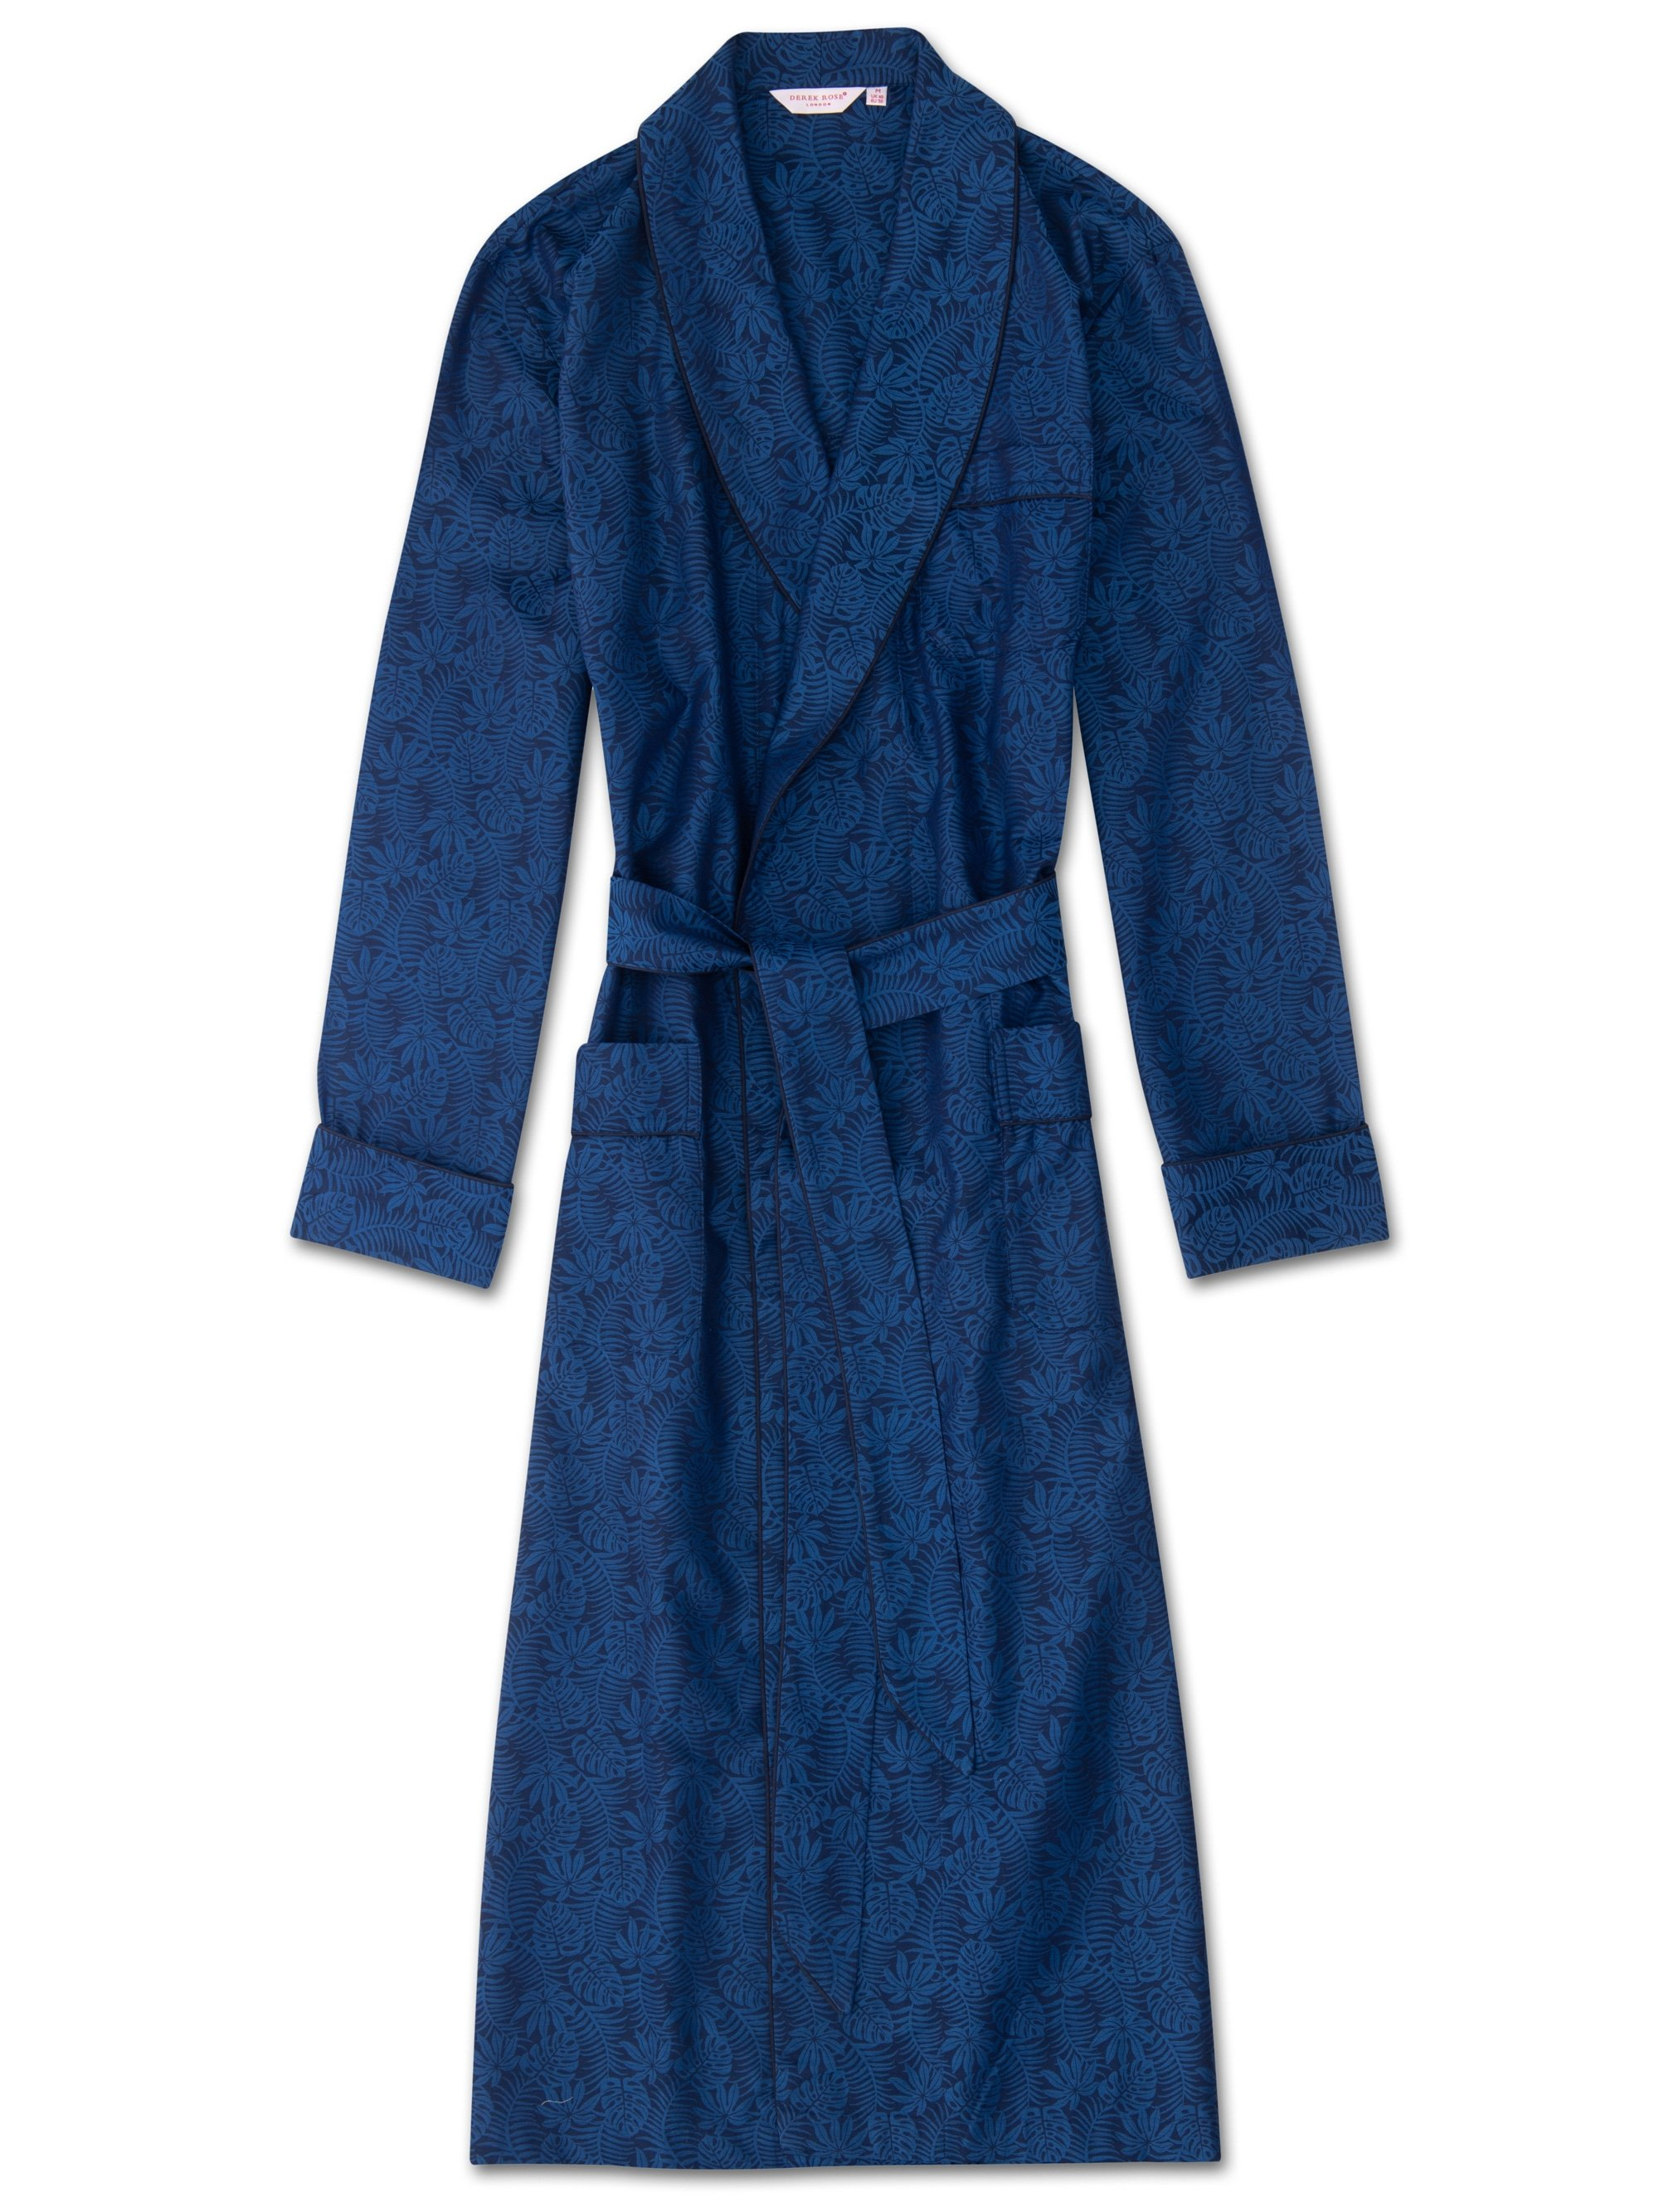 Men's Piped Dressing Gown Paris 15 Cotton Jacquard Navy